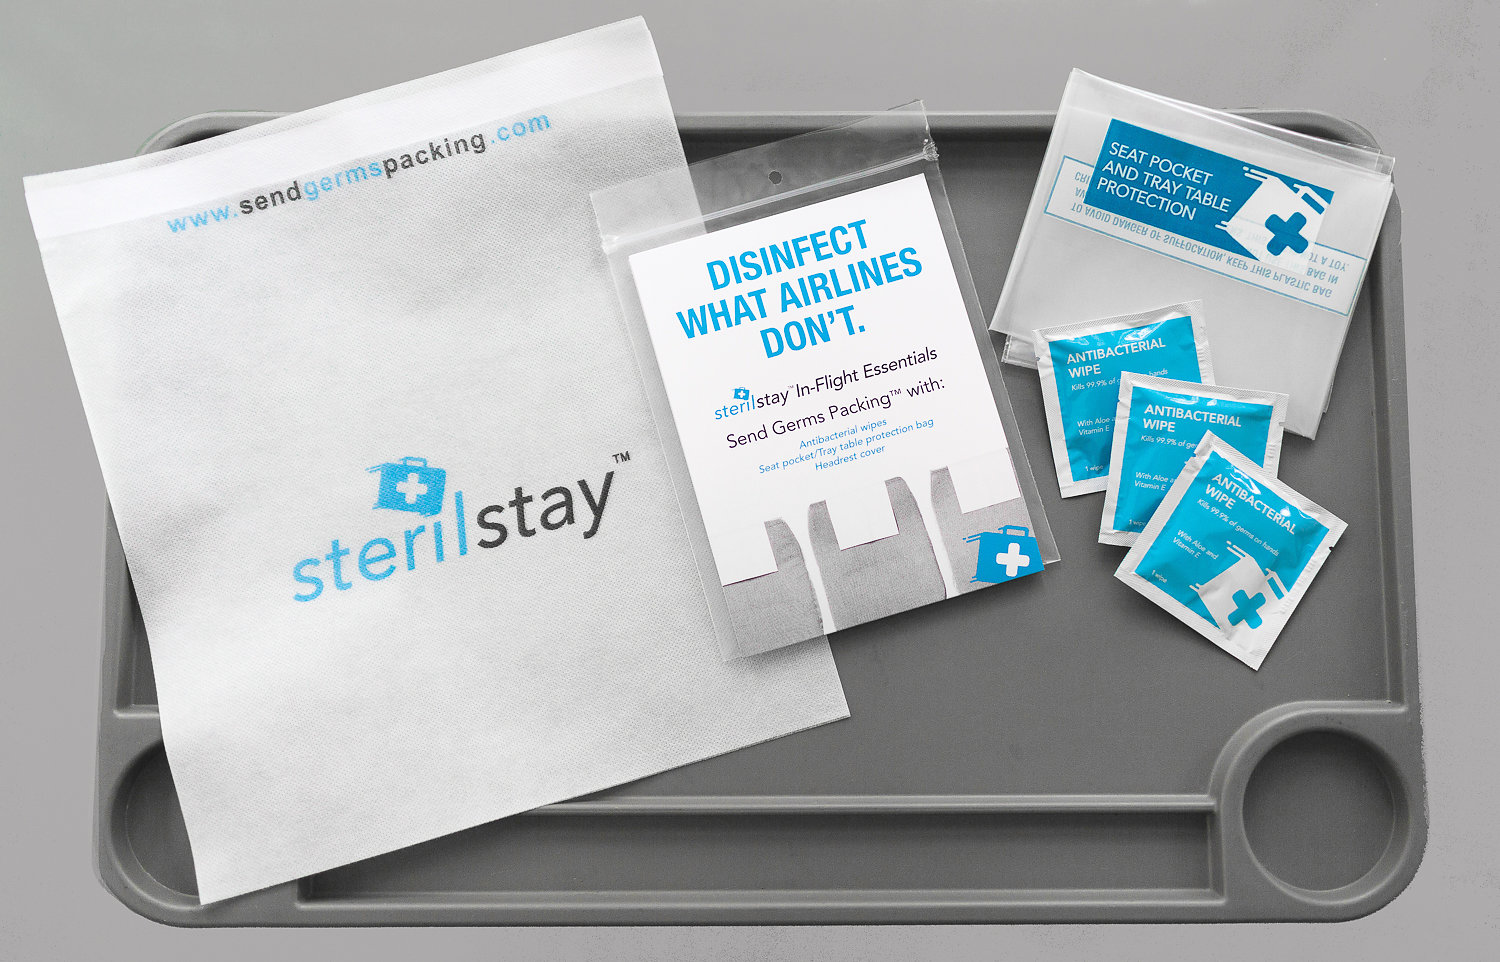 Steril Stay In-flight Essentials Kit